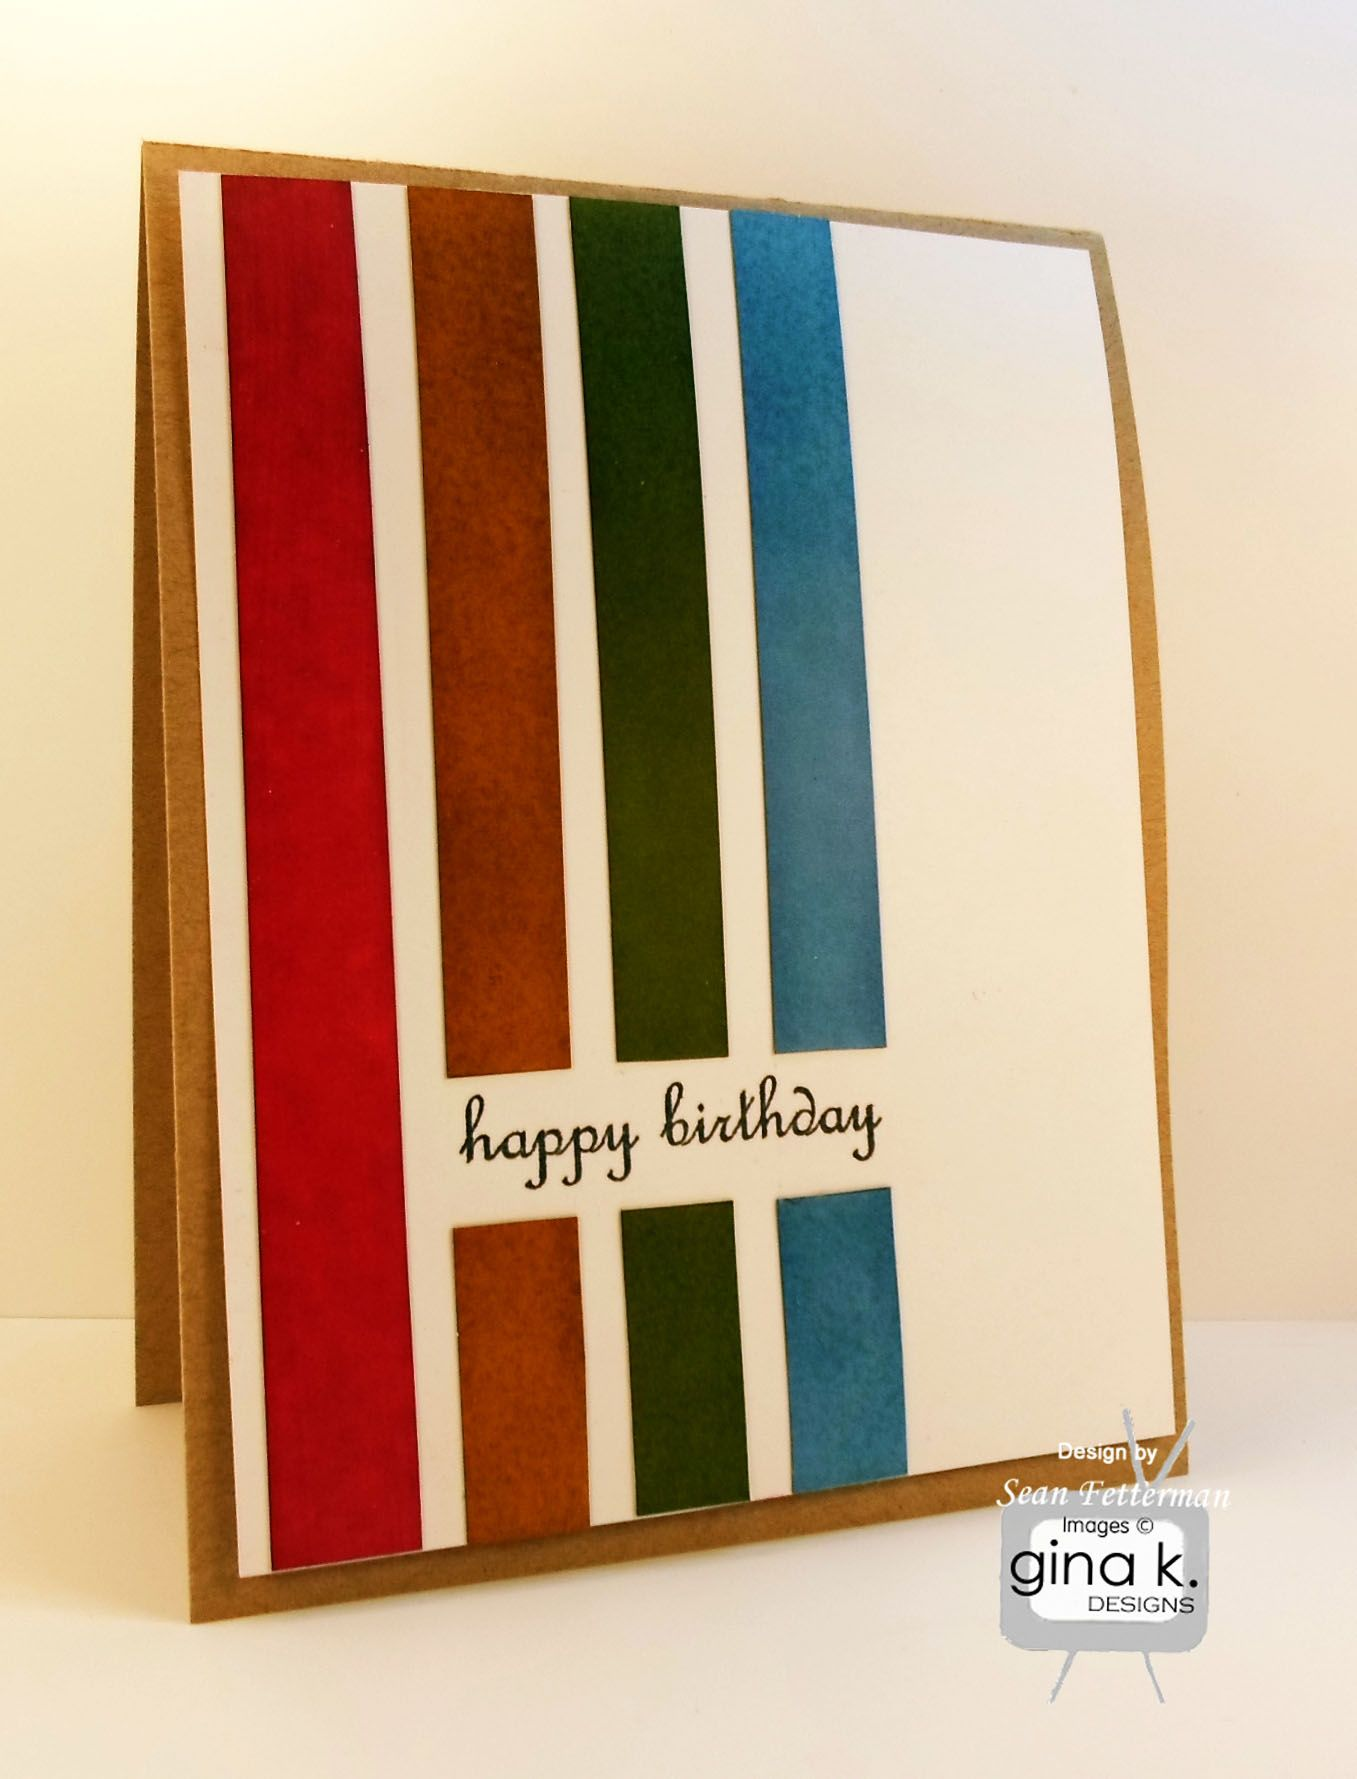 """Happy Birthday"" card made with:    - Gina K's ""Sweet Tweets"" stamp set for Gina K Designs.  - Gina K Designs Kraft card stock (base)  - Gina K Designs 80 lb Layering Weight White card stock.  - Gina K. Designs Color Companion inks to make the panels using Cherry Red, Fresh Asparagus, Powder Blue, and Honey Mustard.    http://cardcraftyclub.blogspot.com/"